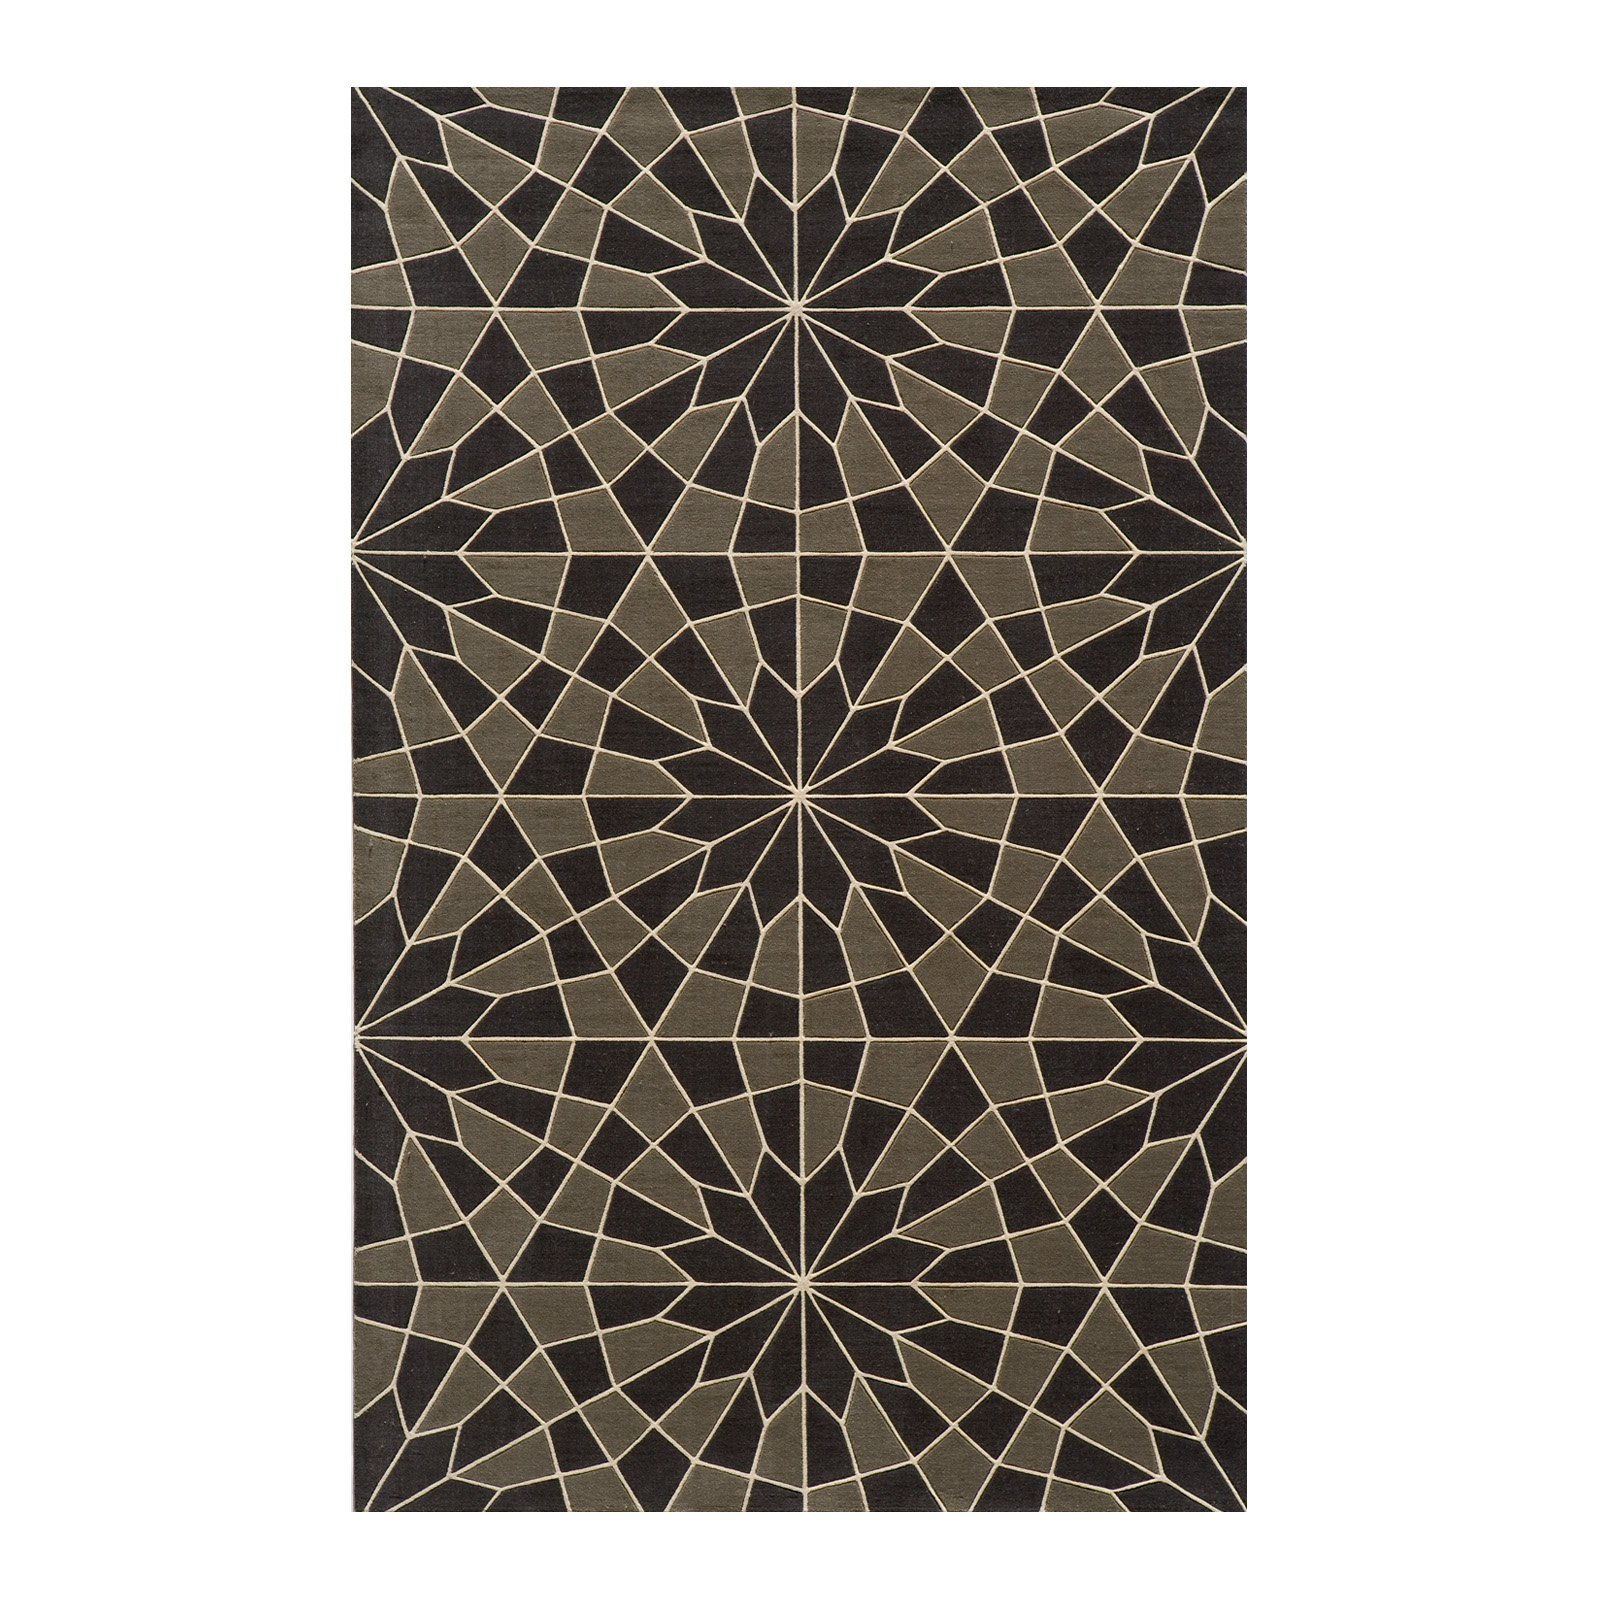 Momeni Rugs ELEMTEL-30CHR2030 Elements Collection, 100% New Zealand Wool Hand Carved Contemporary Area Rug, 2 x 3, Charcoal